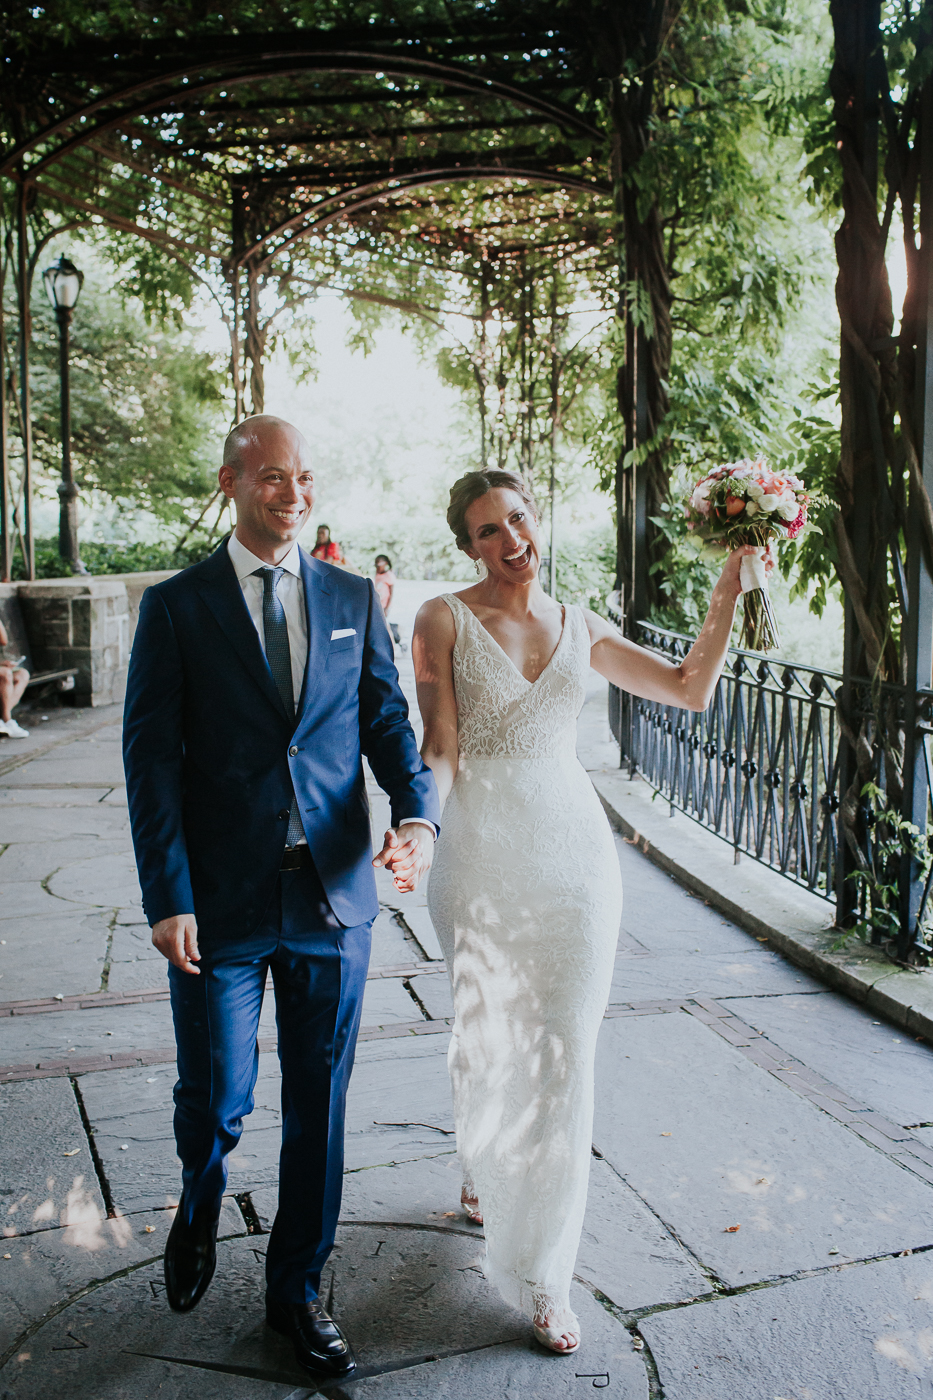 NYC-Central-Park-Conservatory-Garden-Intimate-Elopement-Documentary-Wedding-Photographer-30.jpg